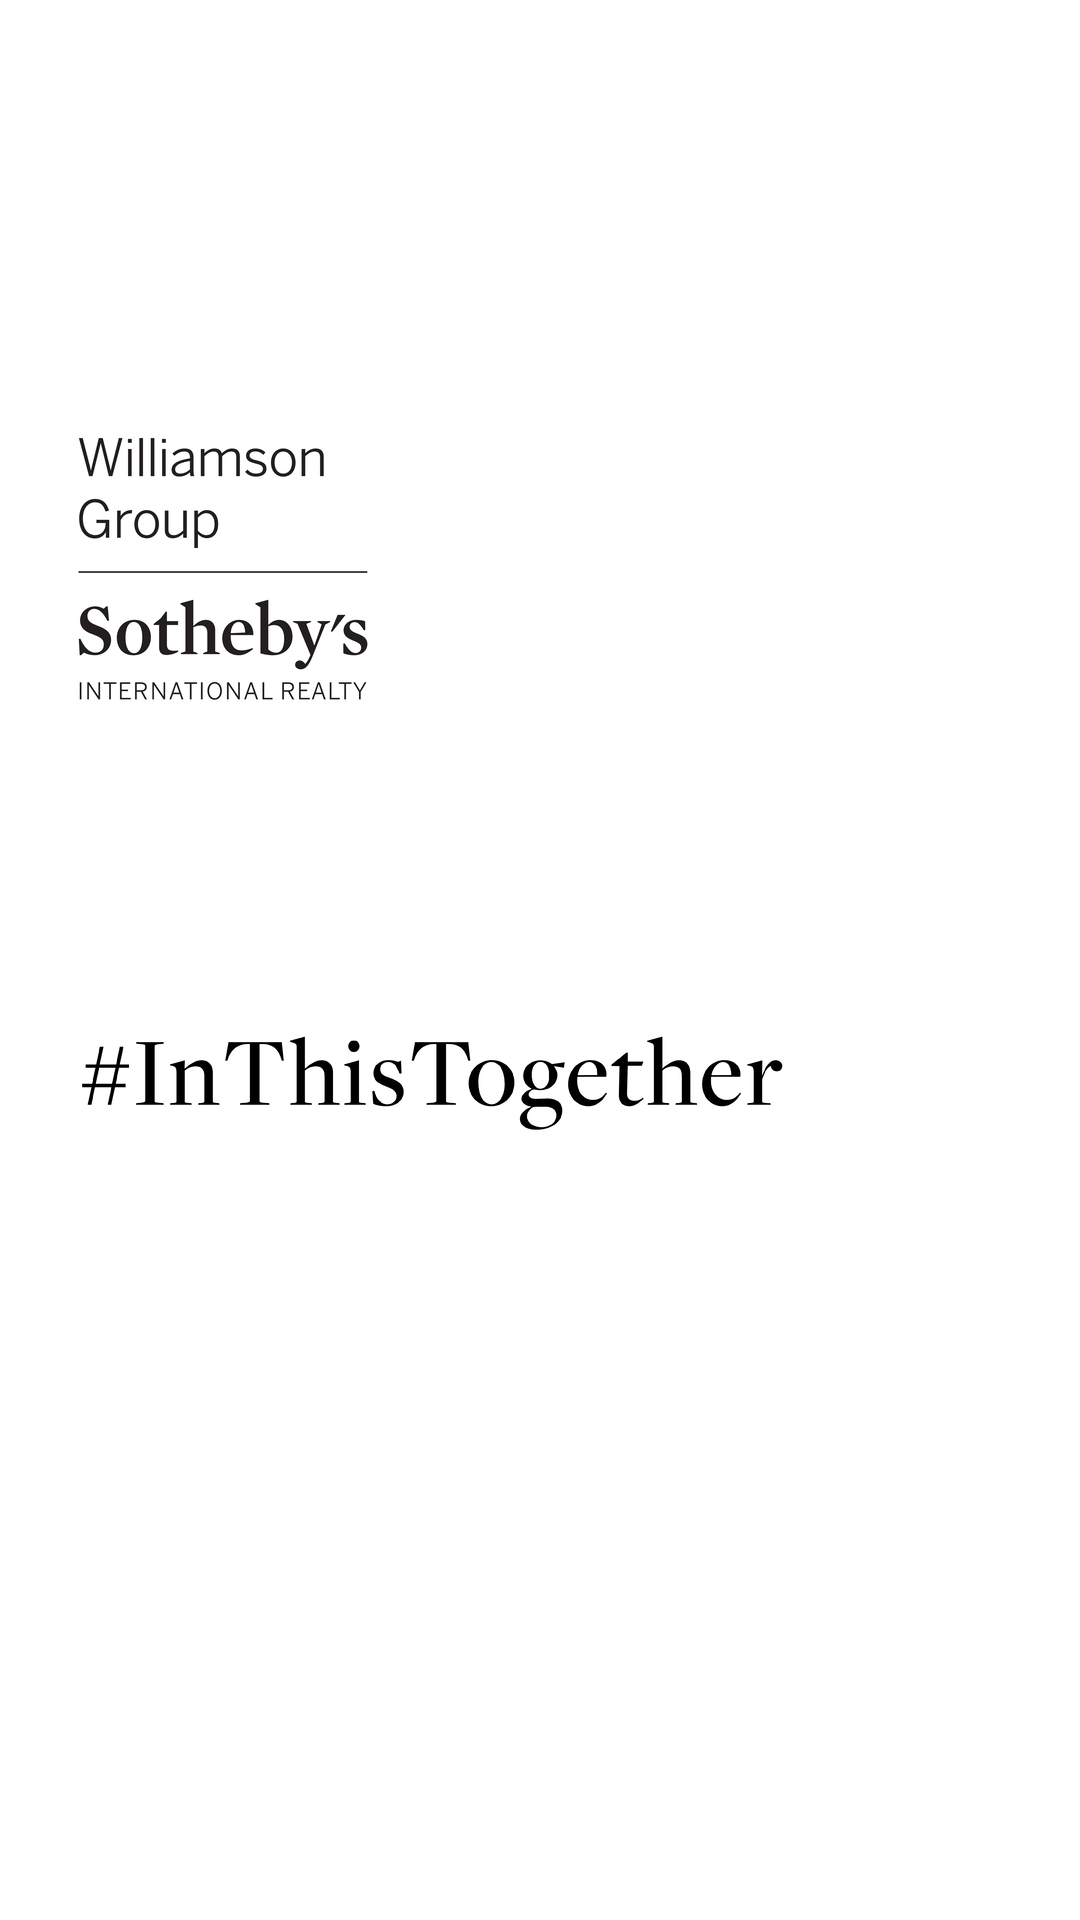 Williamson Group Sotheby's International Realty Logo